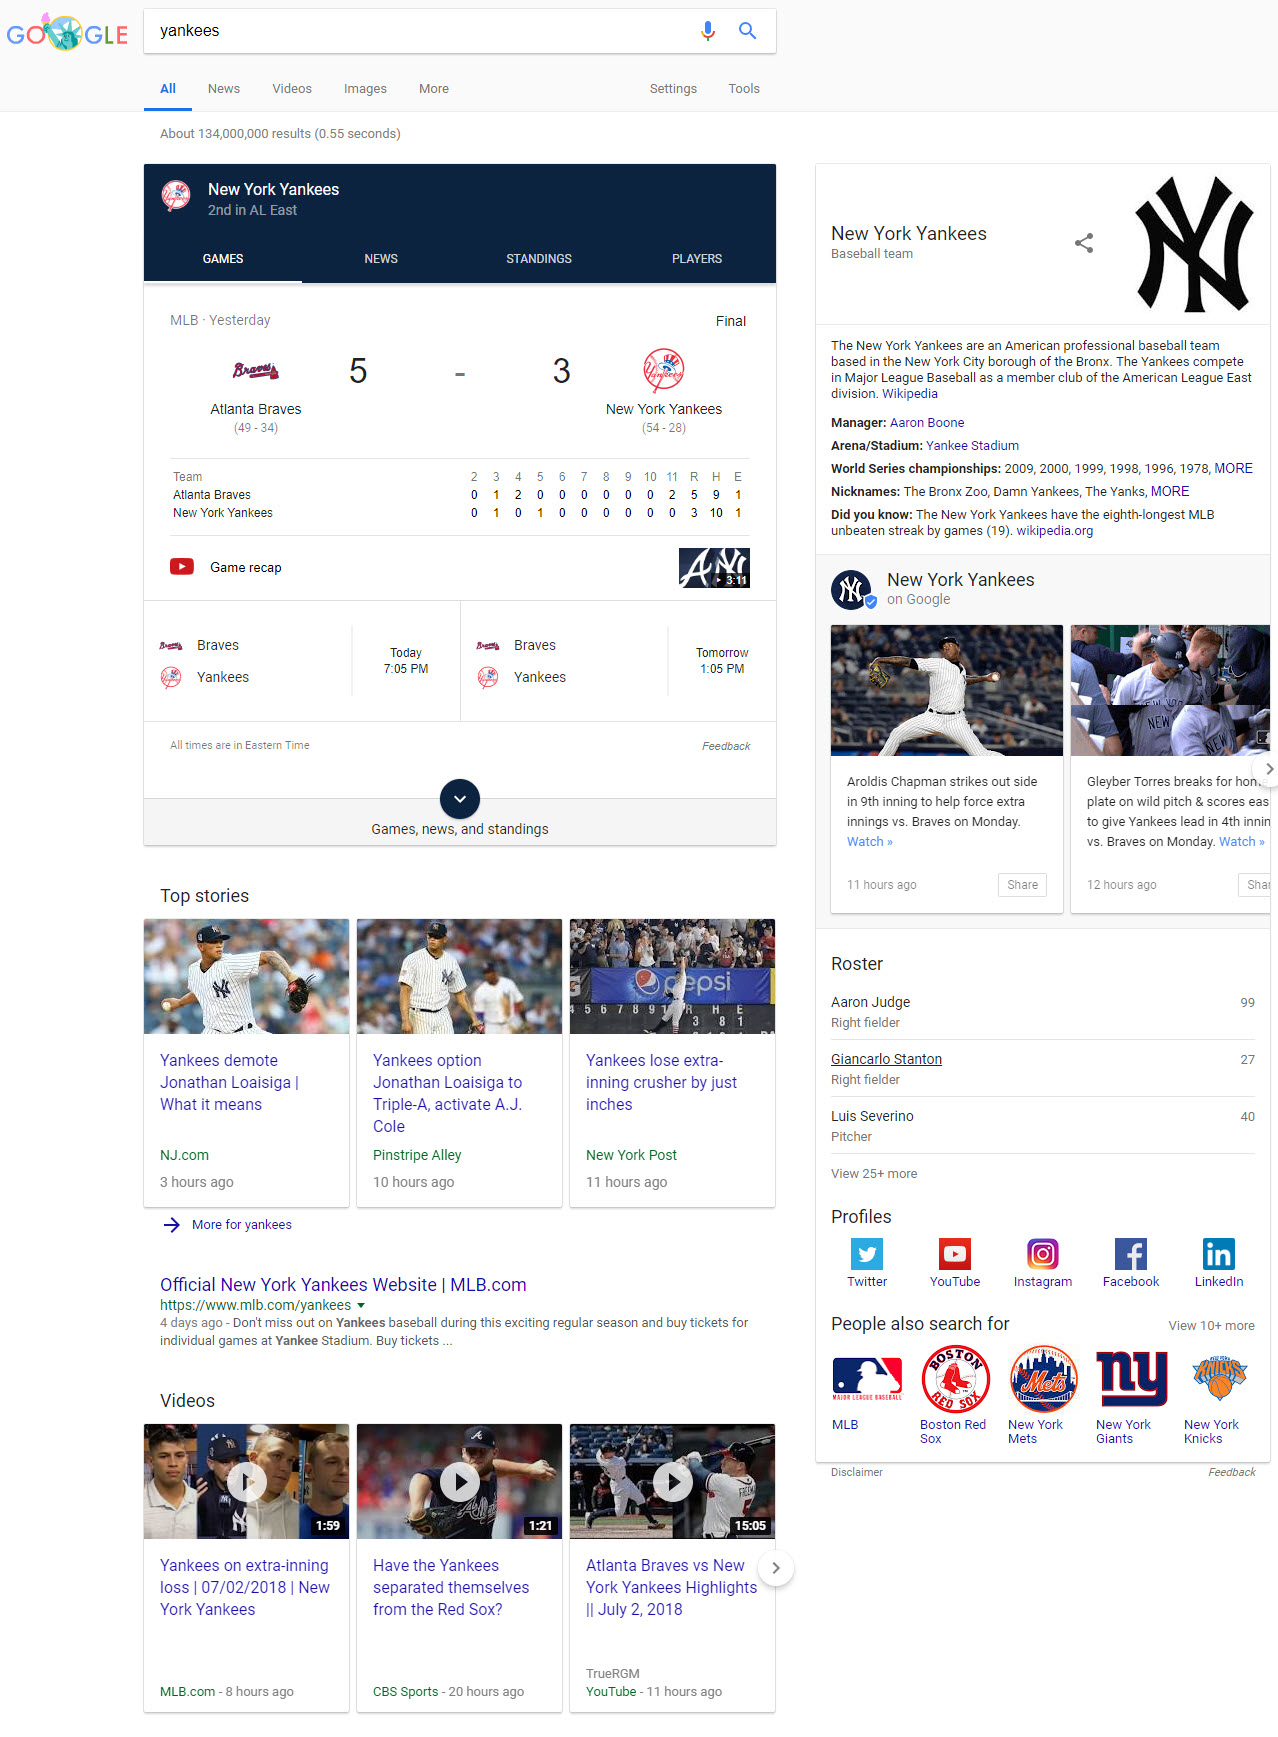 SERP for NY Yankees